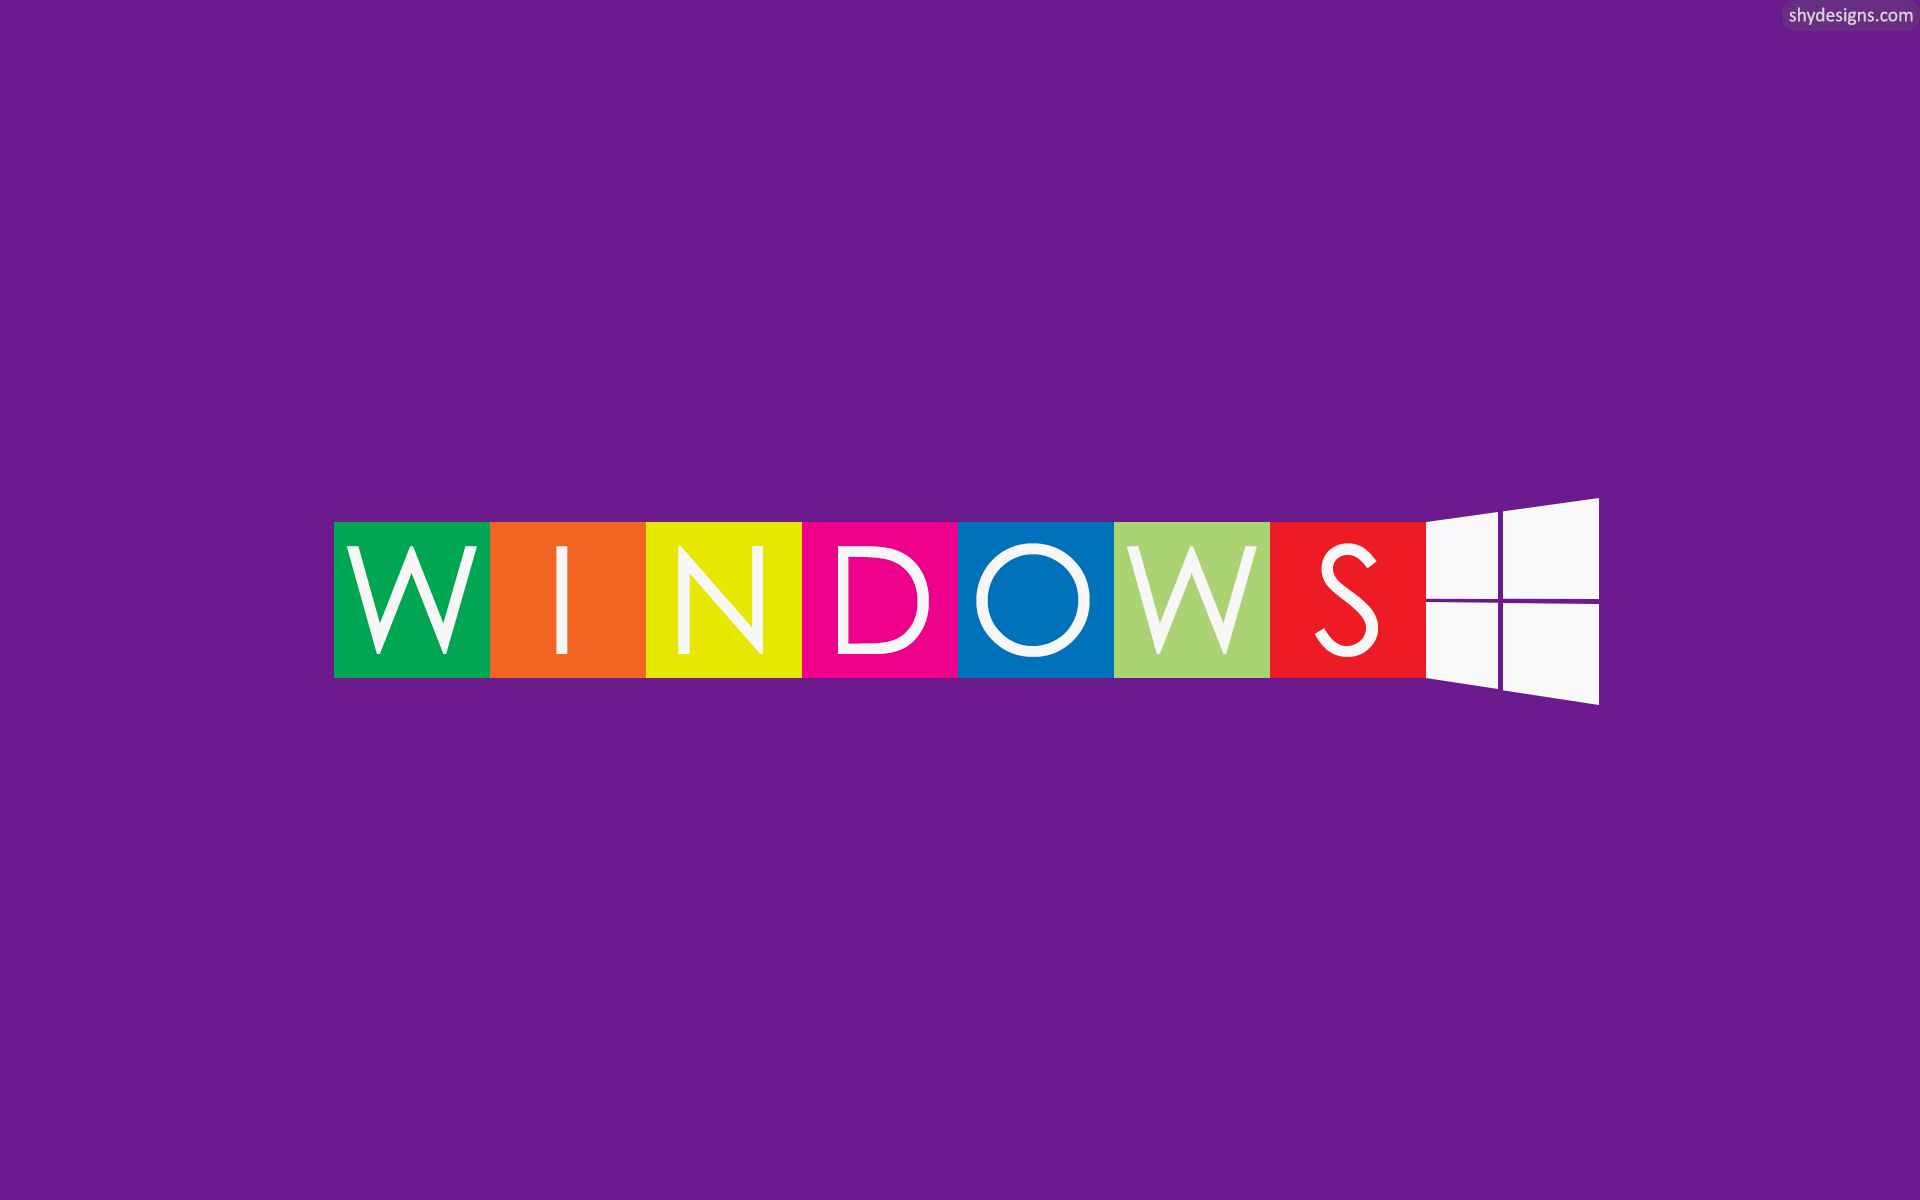 30 Best Windows 8 & 8.1 Wallpapers Download 2016